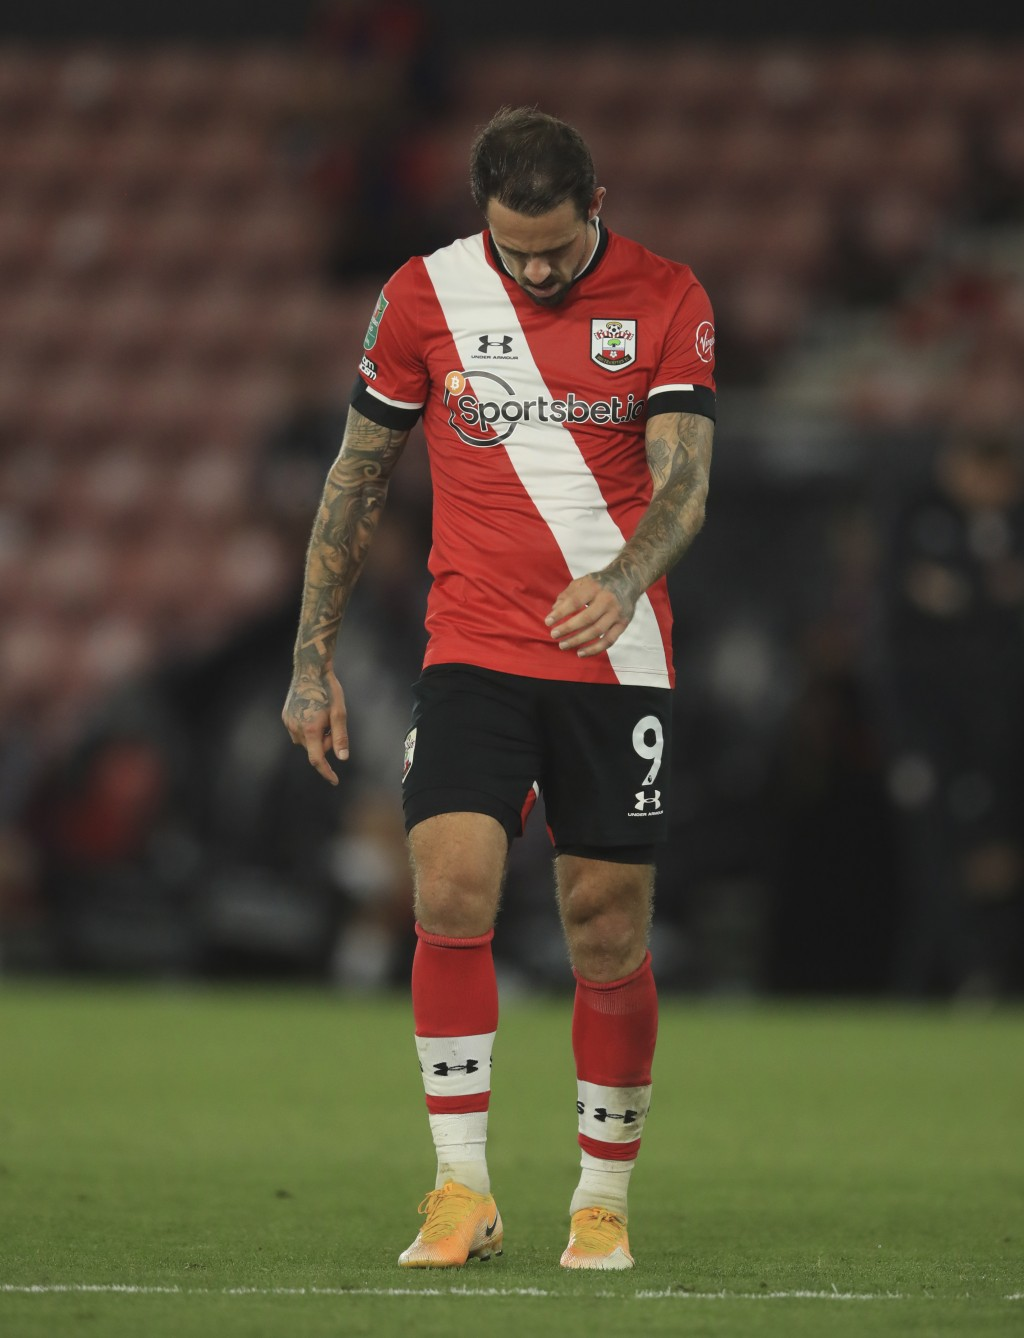 Southampton's Danny Ings reacts during the English League Cup soccer match between Southampton and Brentford at St. Mary's Stadium in Southampton, Eng...